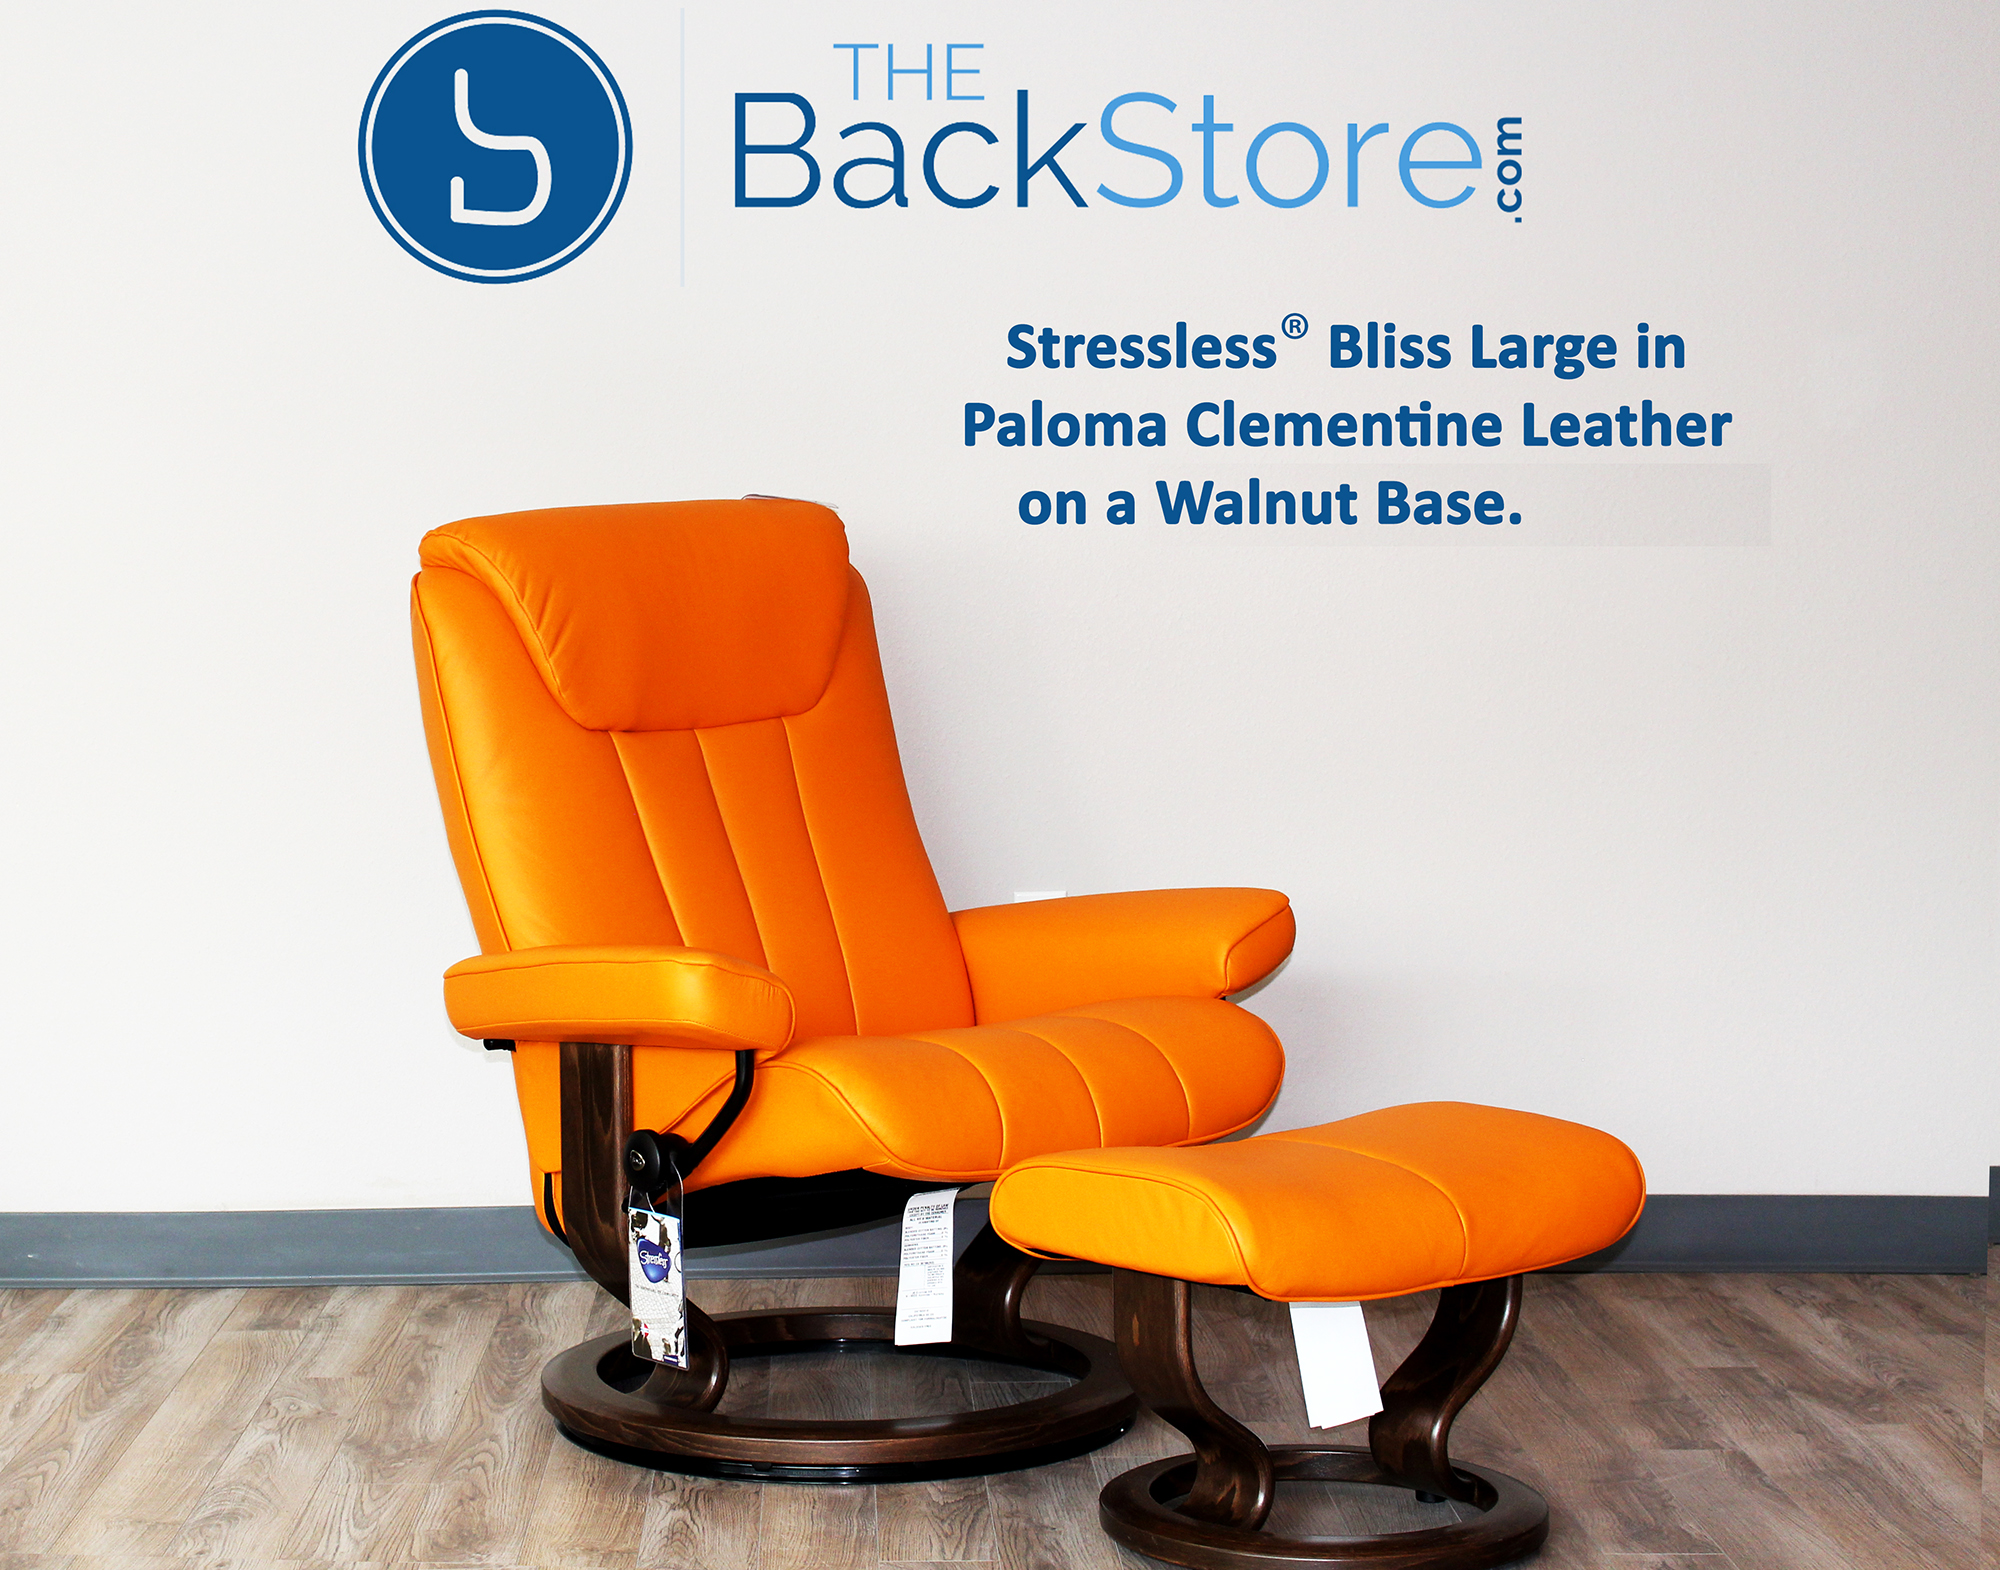 stressless bliss paloma clementine leather recliner chair by ekornes